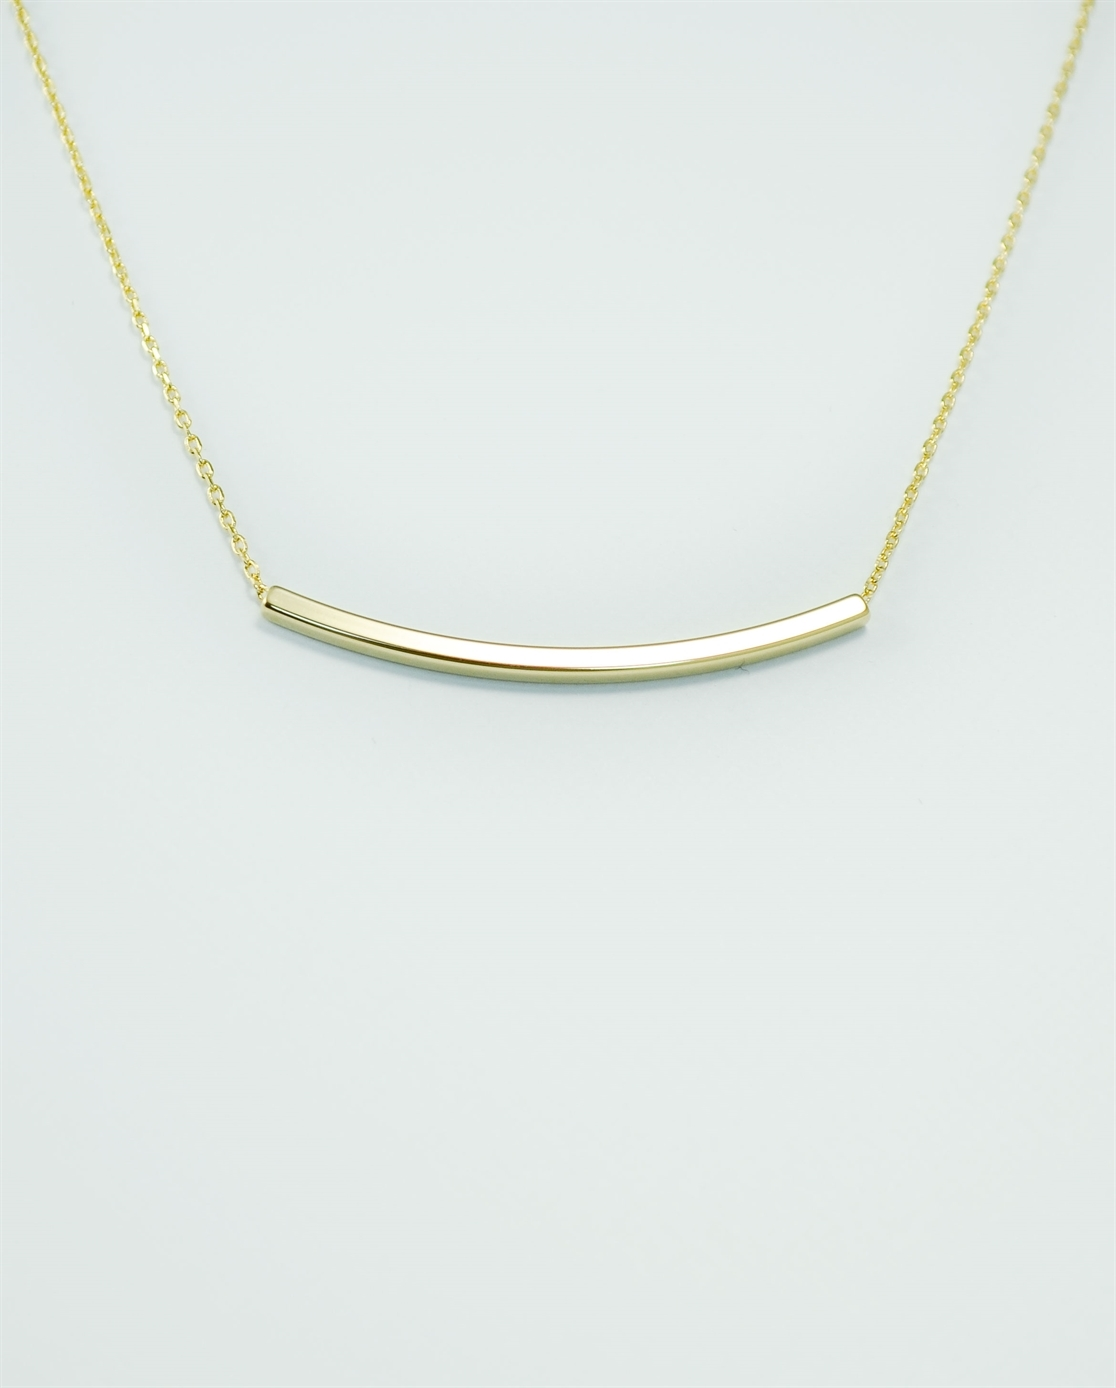 Gold Curved Bar Necklace, Gold Bent Bar Necklace, 16in Pendant Necklace